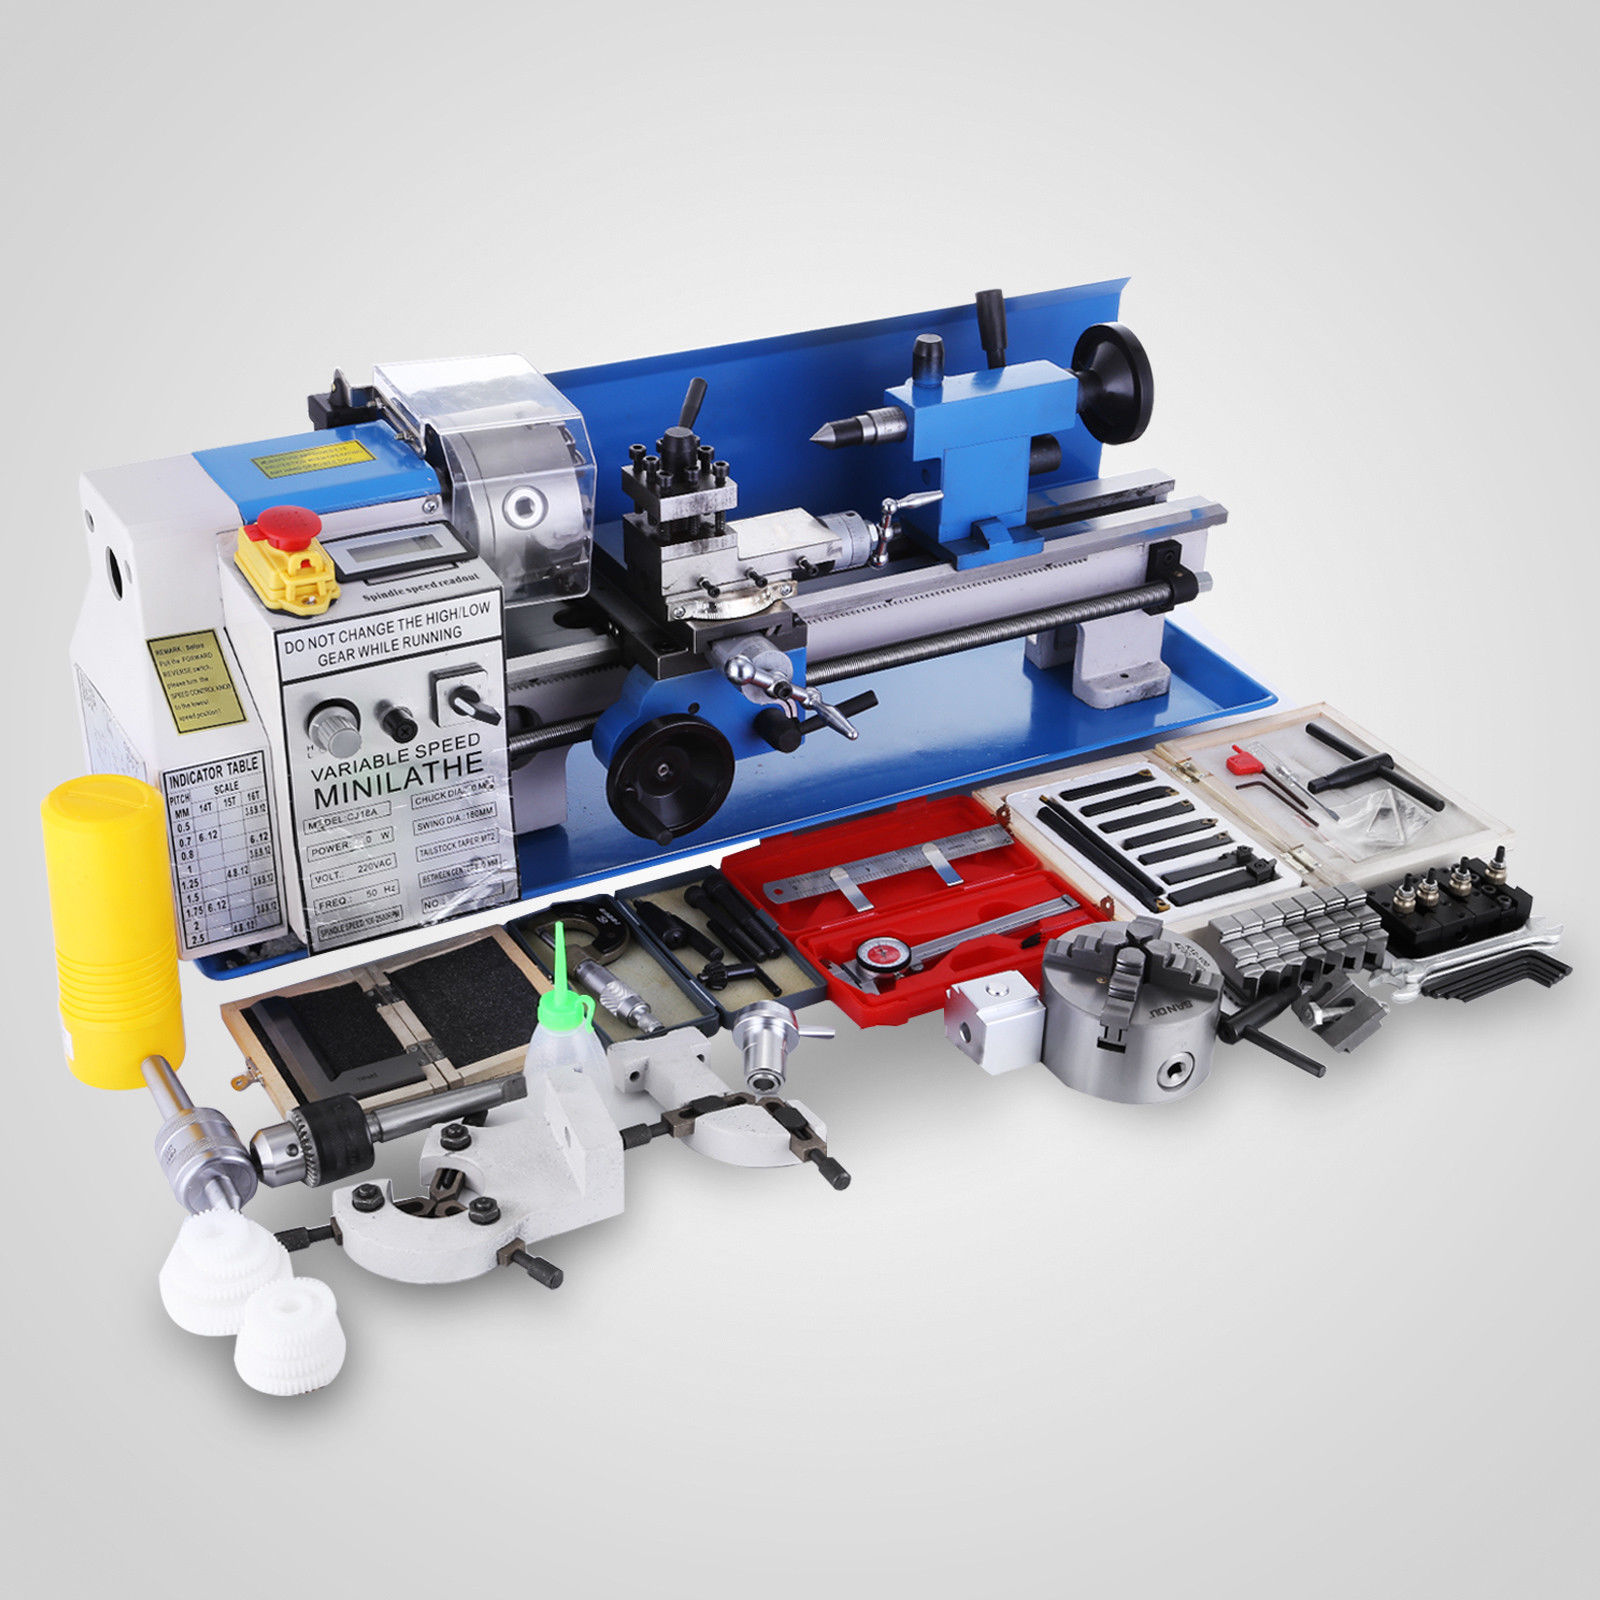 550W Mini Metal Lathe 7x14 inch for Metal Bench Top Lathe Precision Parallel Lathe Variable Speed Digital Drilling